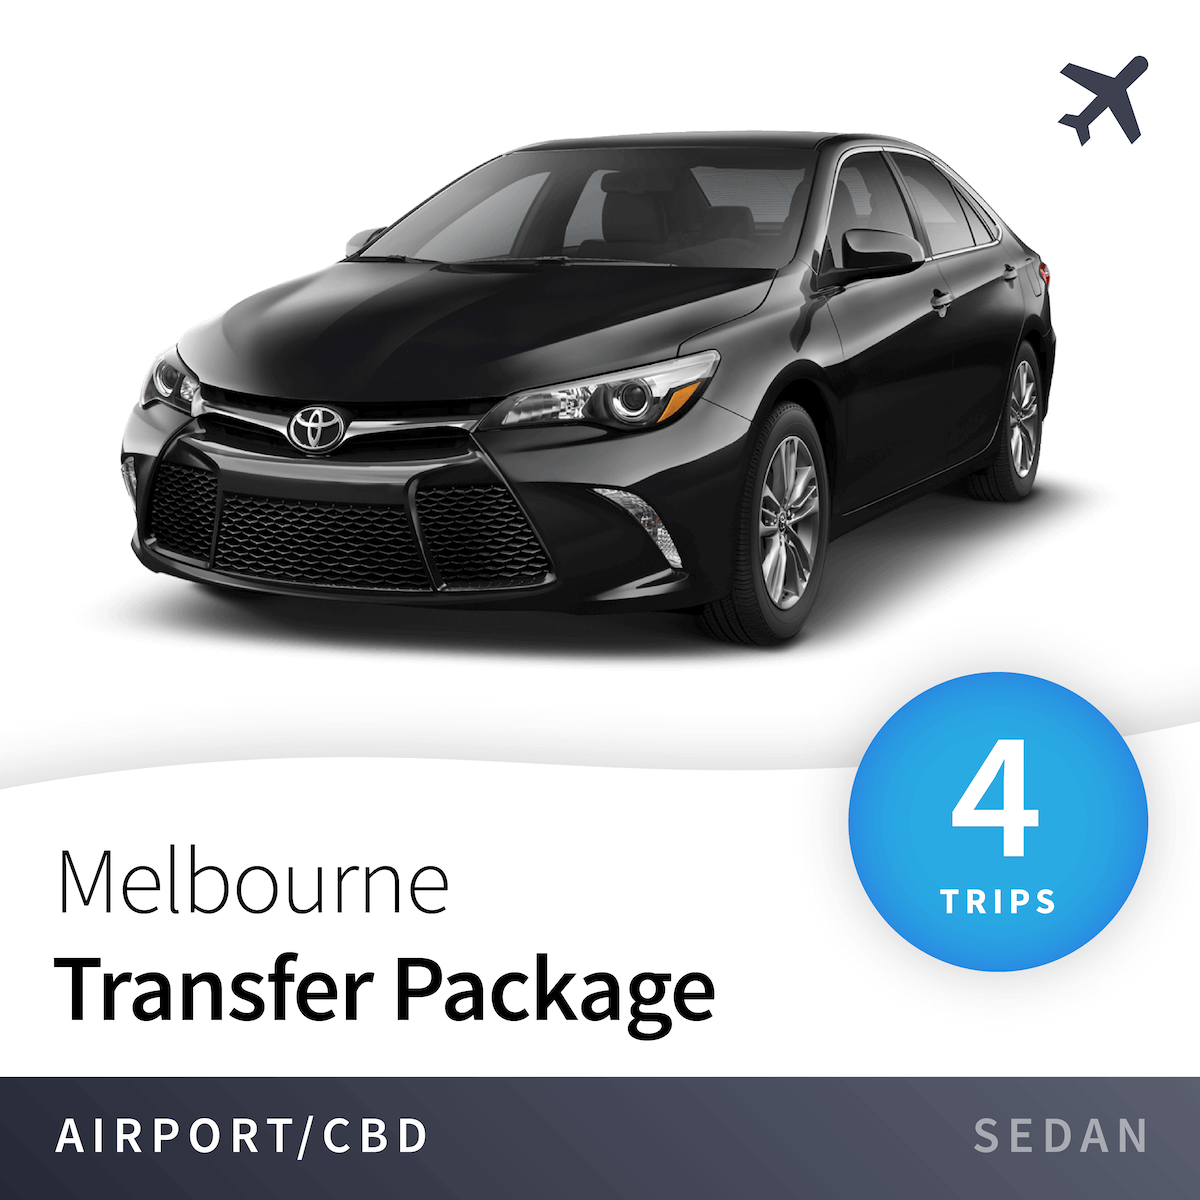 Melbourne Airport Transfer Package - Sedan (4 Trips) 9